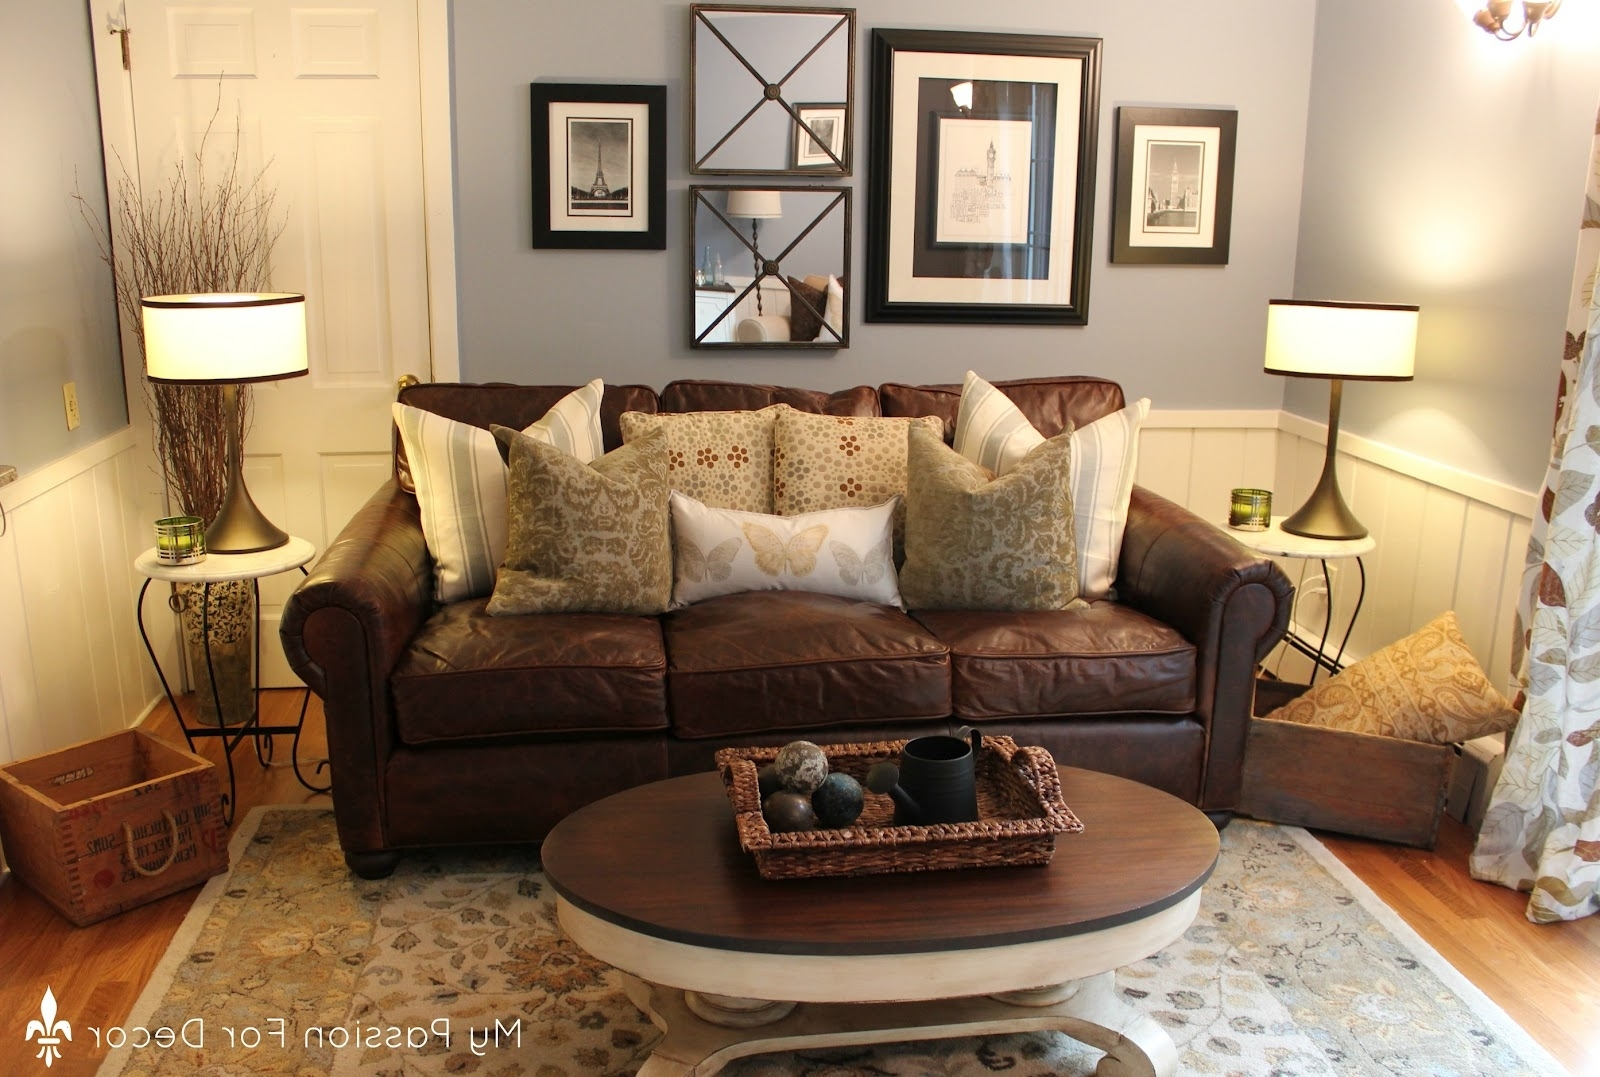 Restoration Hardware Sectional Sofas Within 2018 My Passion For Decor: Our New Addition! (View 9 of 15)